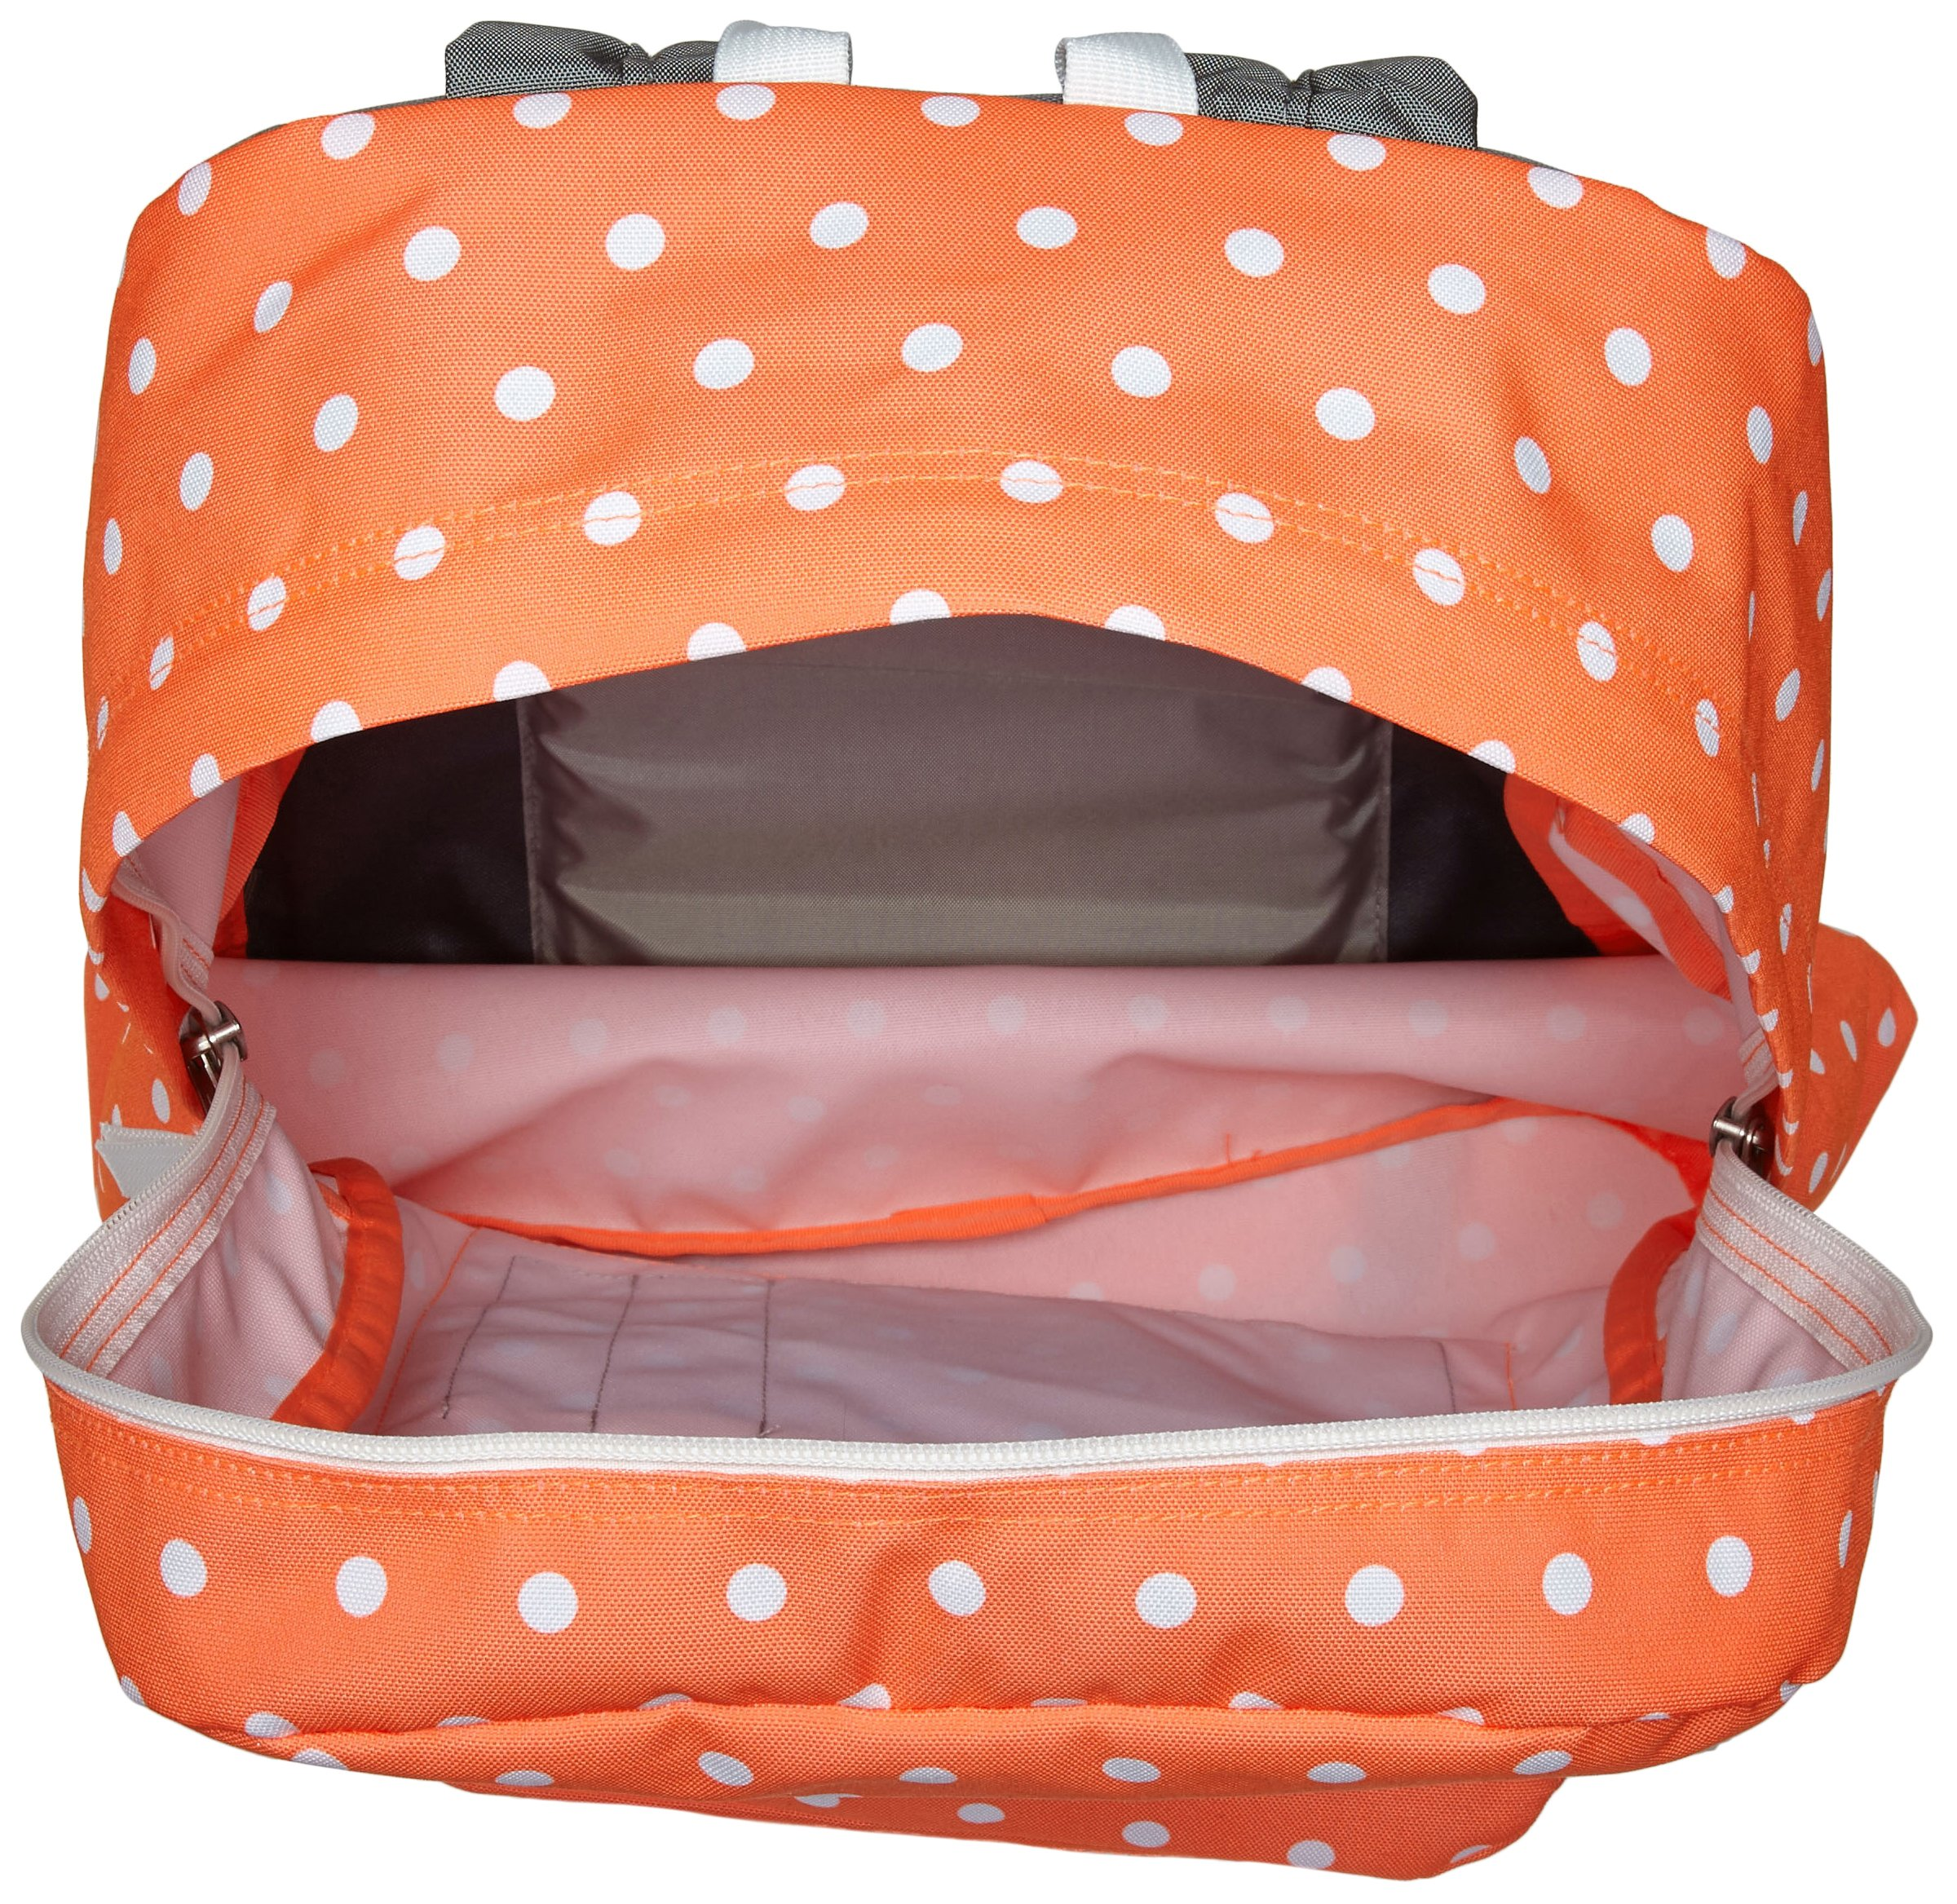 JanSport Superbreak, Tahitian Orange/White Dots, One Size by JanSport (Image #3)